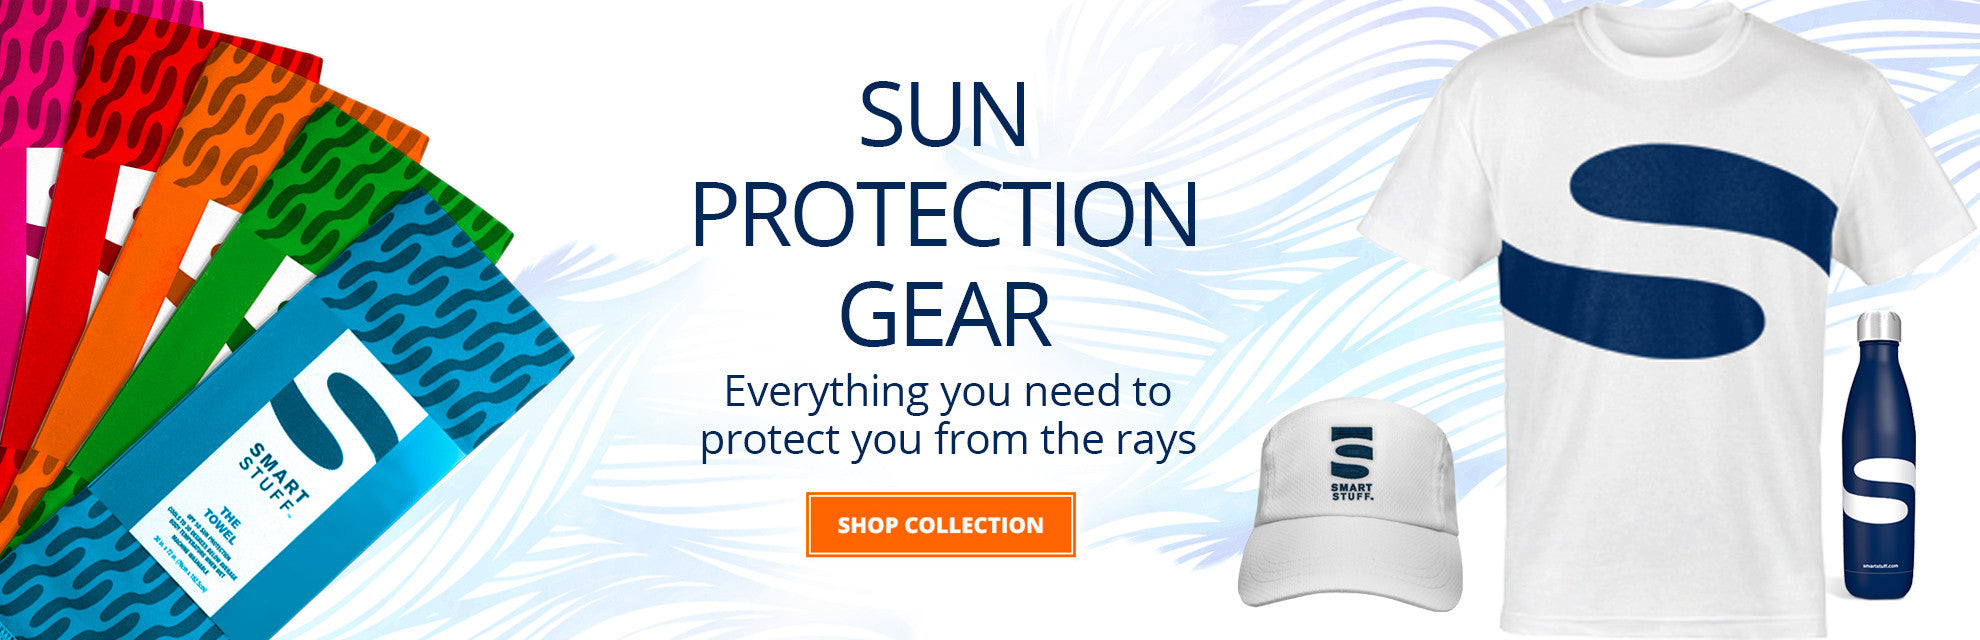 SUN PROTECTION GEAR